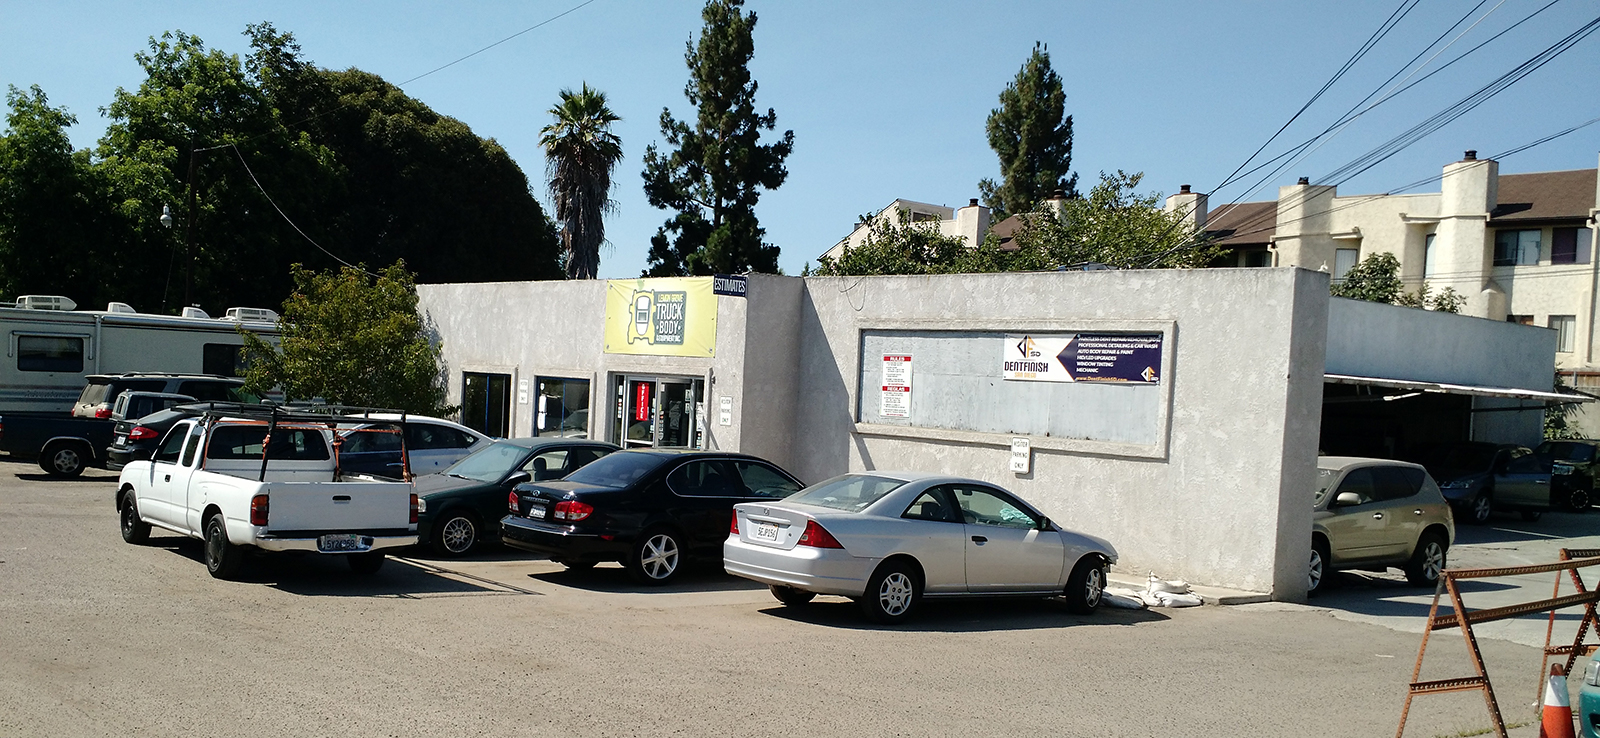 Auto body shop fumes causing problems for neighbors